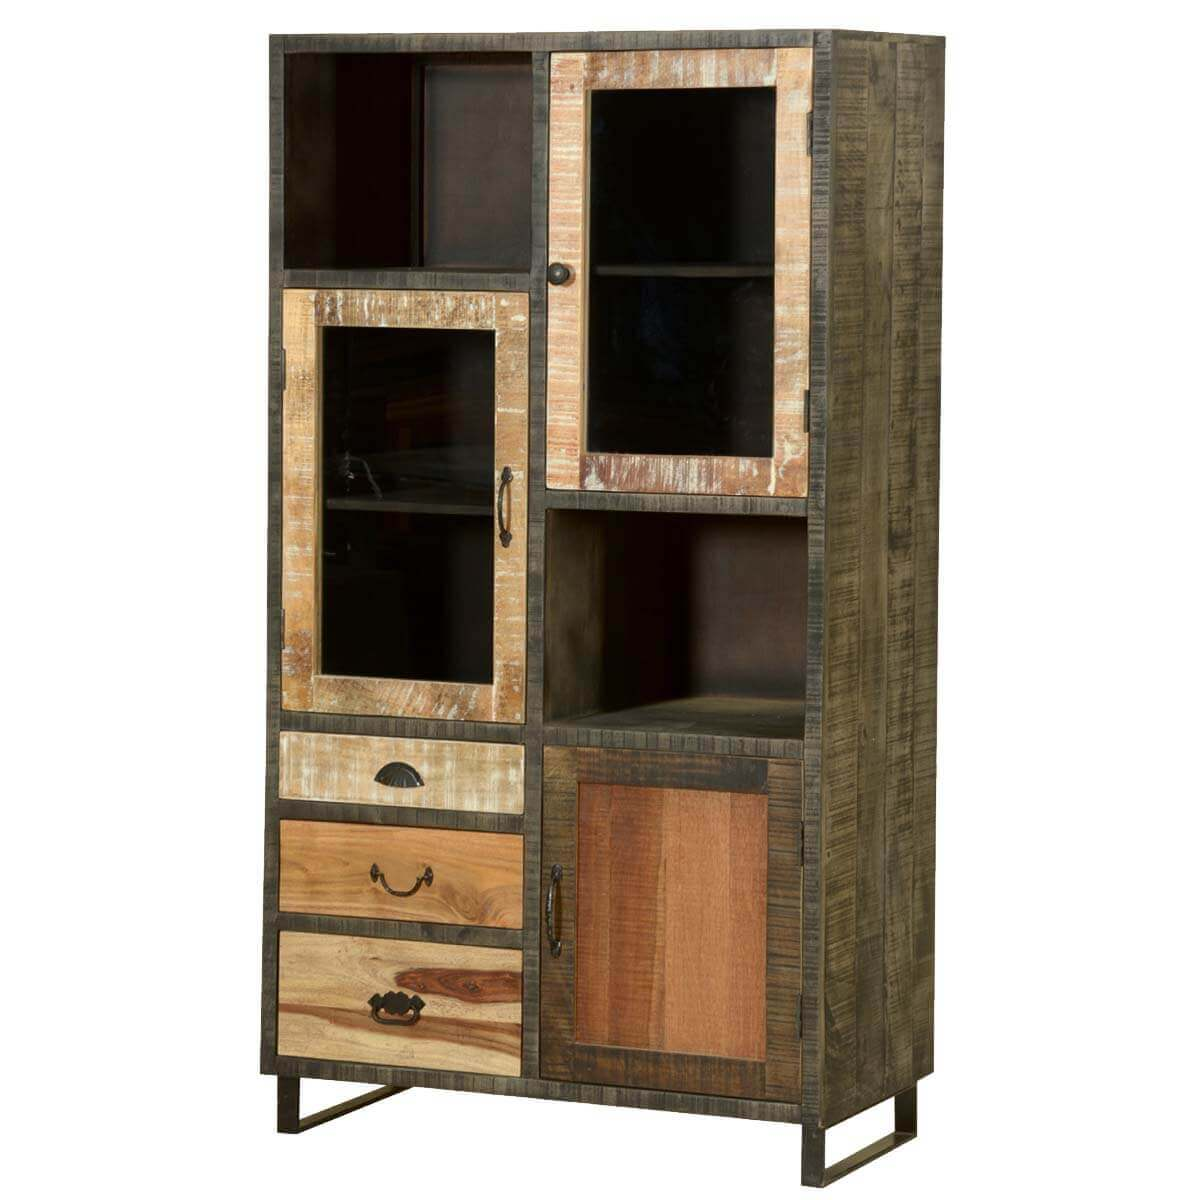 In Wall Media Cabinet Wooden Patches Mango Wood Iron Media Wall Unit Cabinet